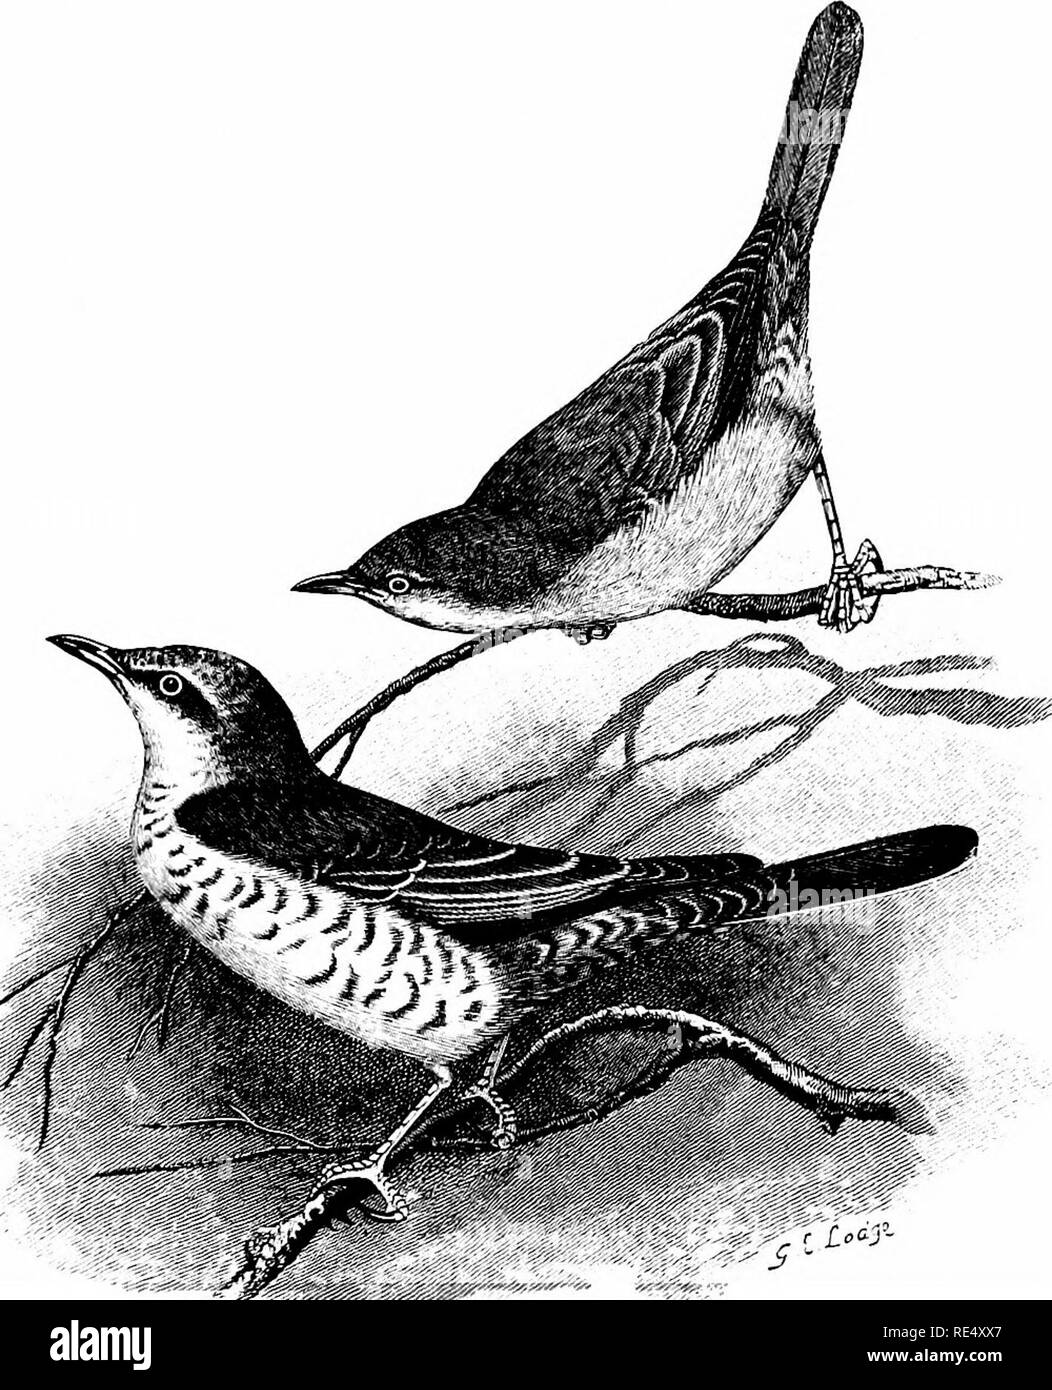 . An illustrated manual of British birds. Birds. SYLVIIN/E. 51. THE BARRED WARBLER. Sylvia nis6ria (Bechstein). On March 4th, 1879, Professor Newton exhibited at a meeting of the Zoological' Society a specimen of the Barred Warbler which liad been shot many years previously in a garden near Queen's College, Cambridge. Since attention was thus drawn to this species as a visitor, eleven more examples have been obtained in the British Islands. Between 1884 and 1896, four occurred in East Yorkshire at dates varying from August 28th to November 13th, and three near Blakeney, Norfolk, from August 31 - Stock Image